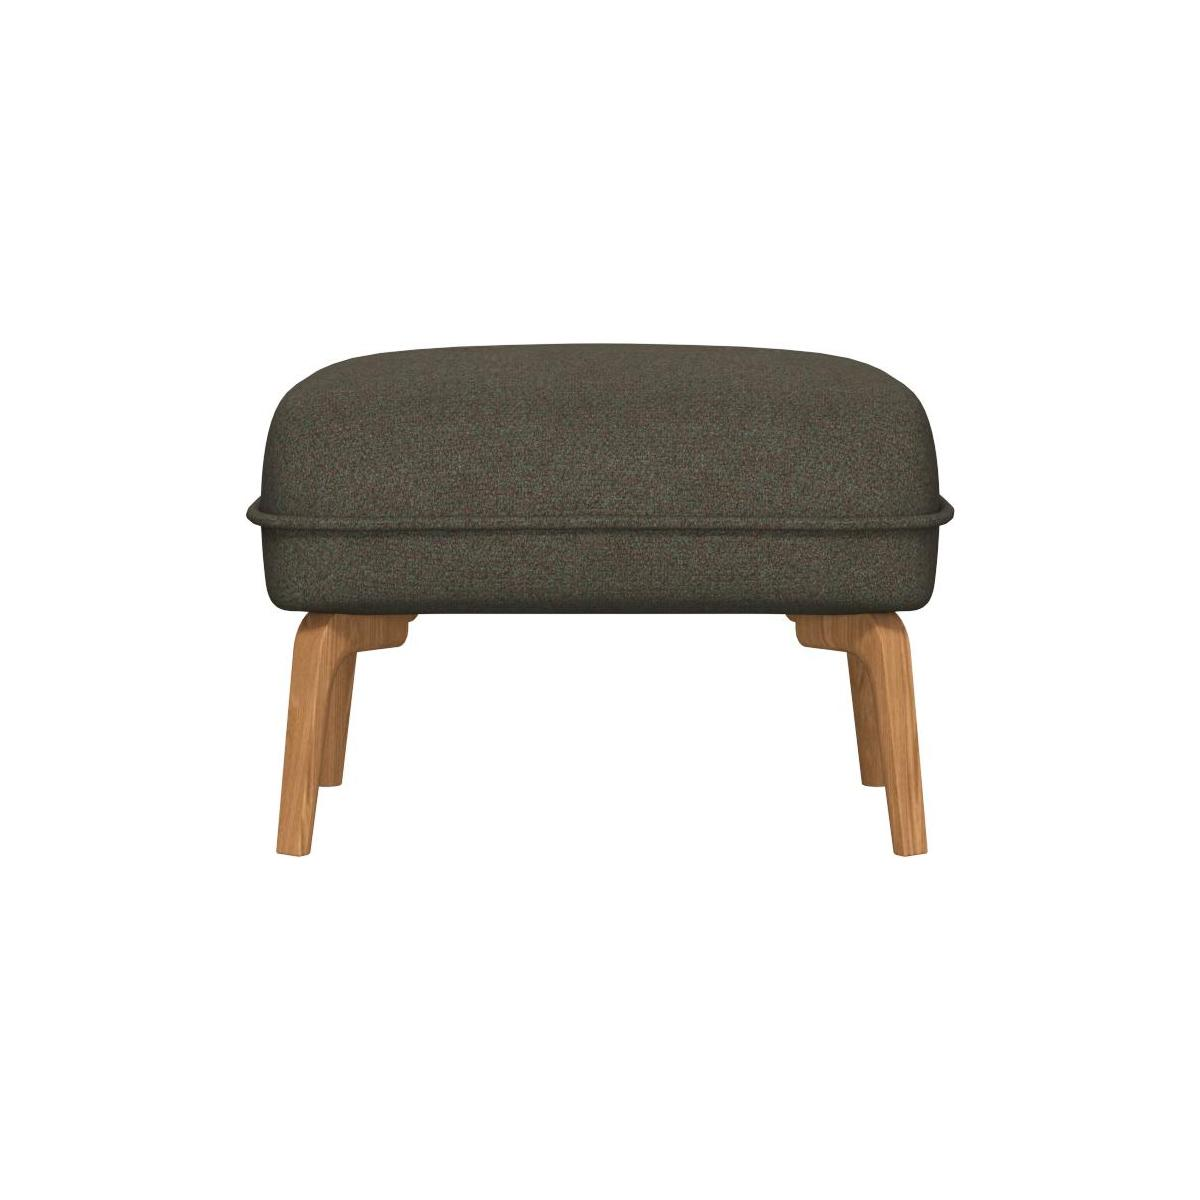 Footstool in Lecce fabric, slade grey and natural oak feet n°3